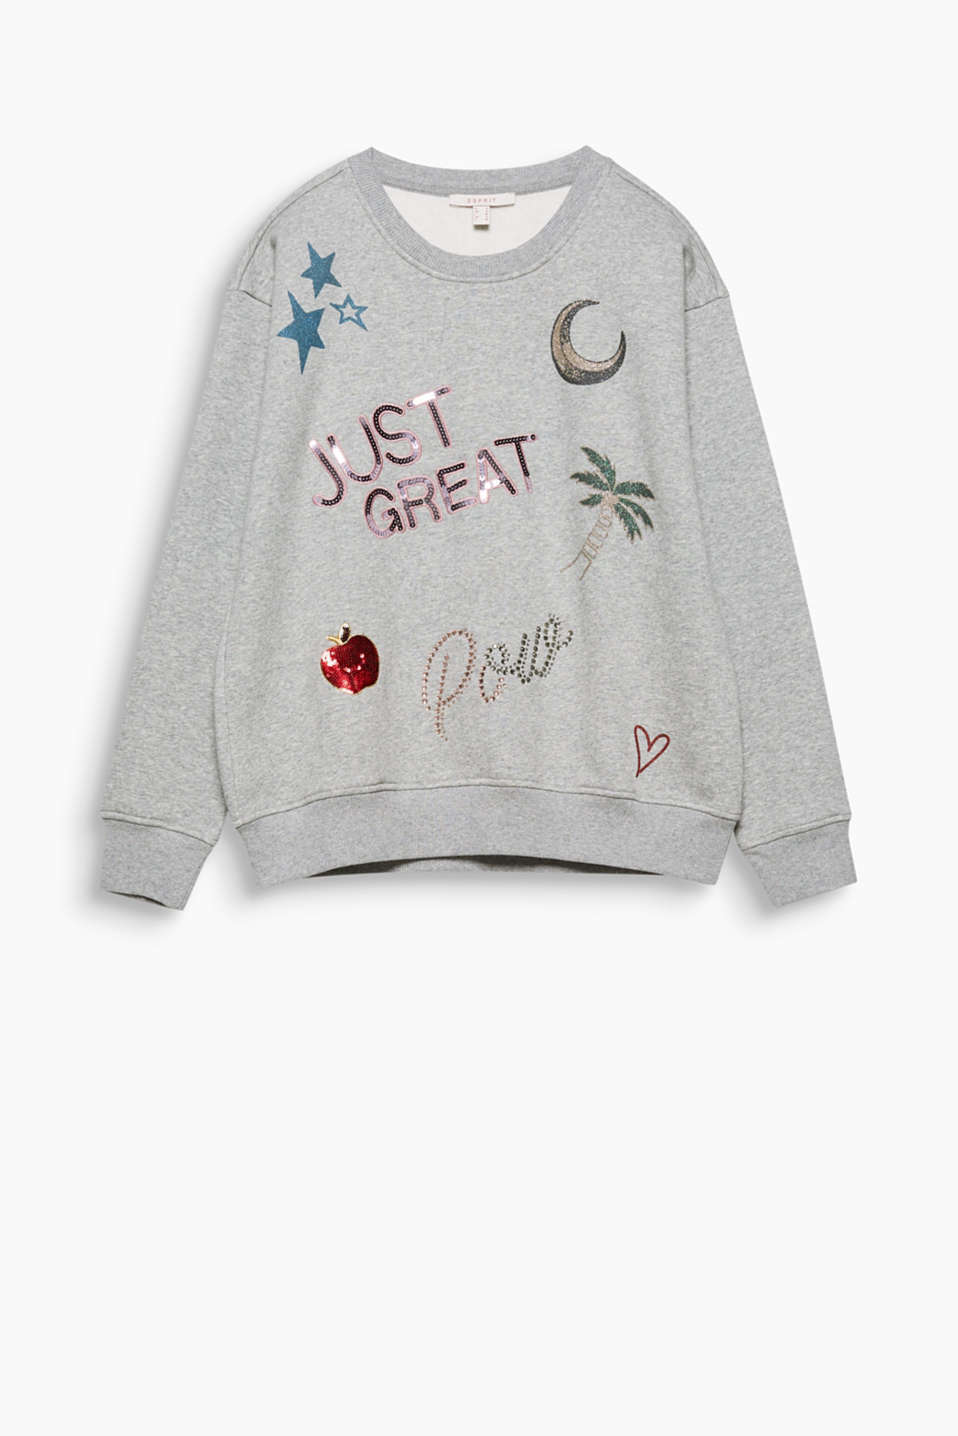 Glamorous casual wear: ultra soft sweatshirt, brushed on the inside, with sequins, rhinestones and glittery prints